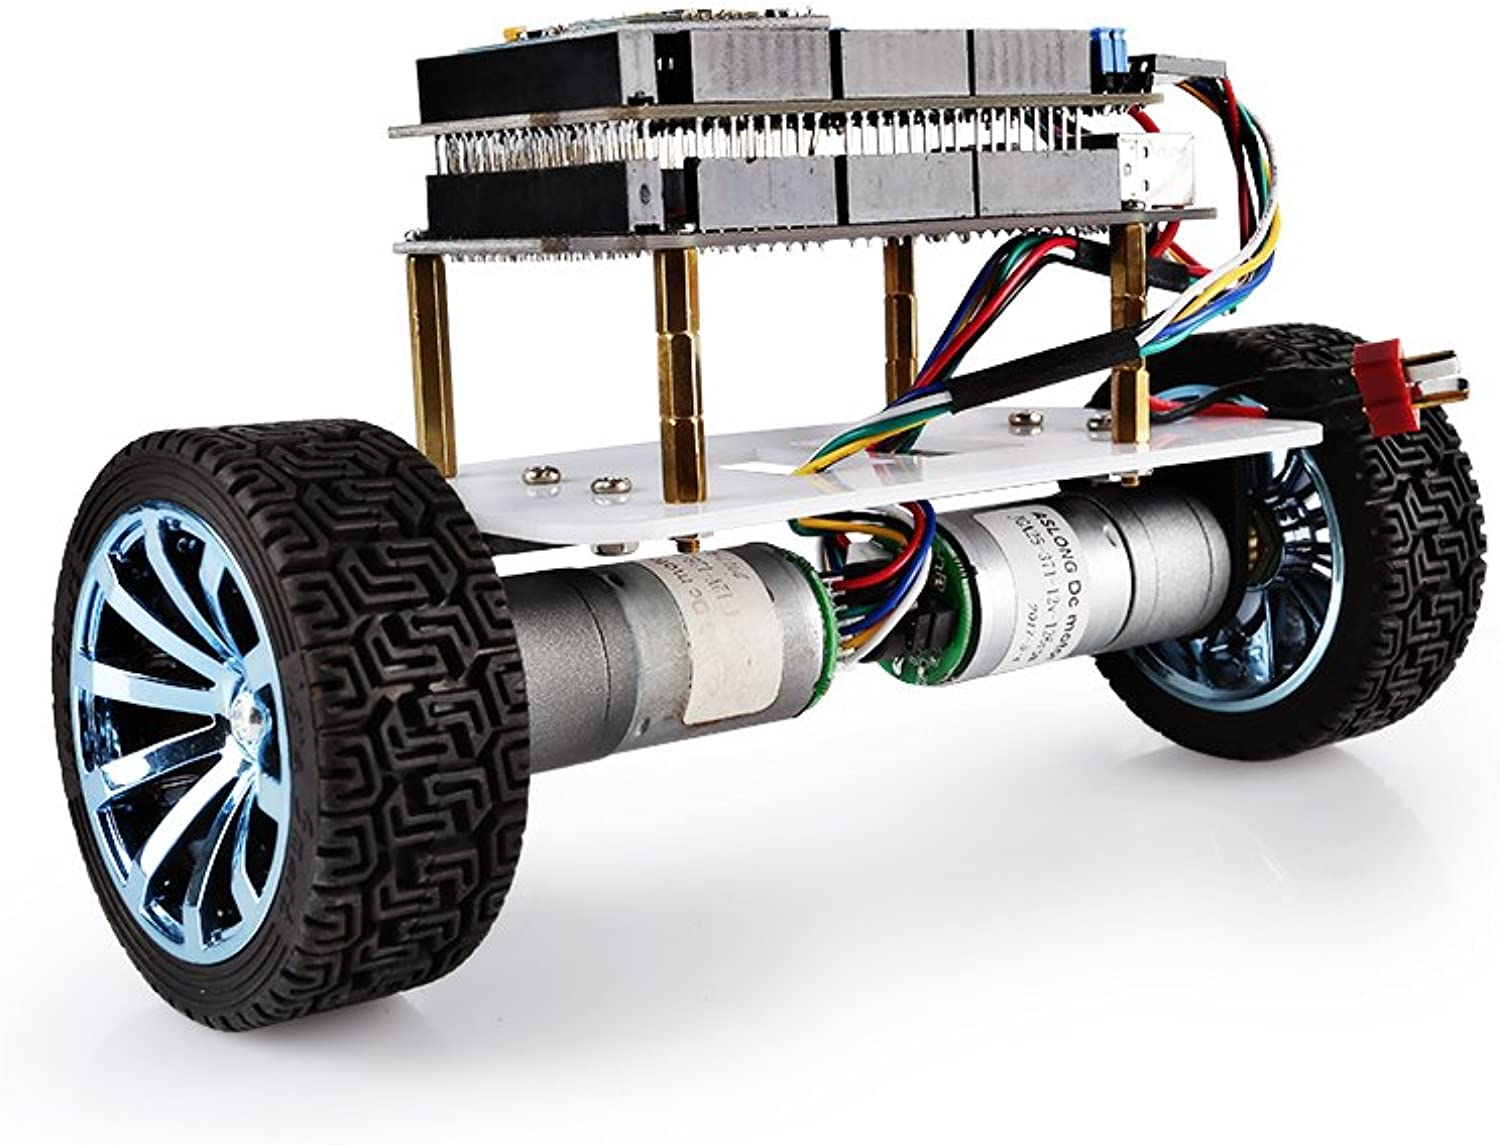 SainSmart Upgraded Smart Robot Car Kit with Mega InstaBots V4 Kit with blueetooth Module, for Arduino Programmable Robot Kit Learn Coding, Robotics, Electronics and Have Fun